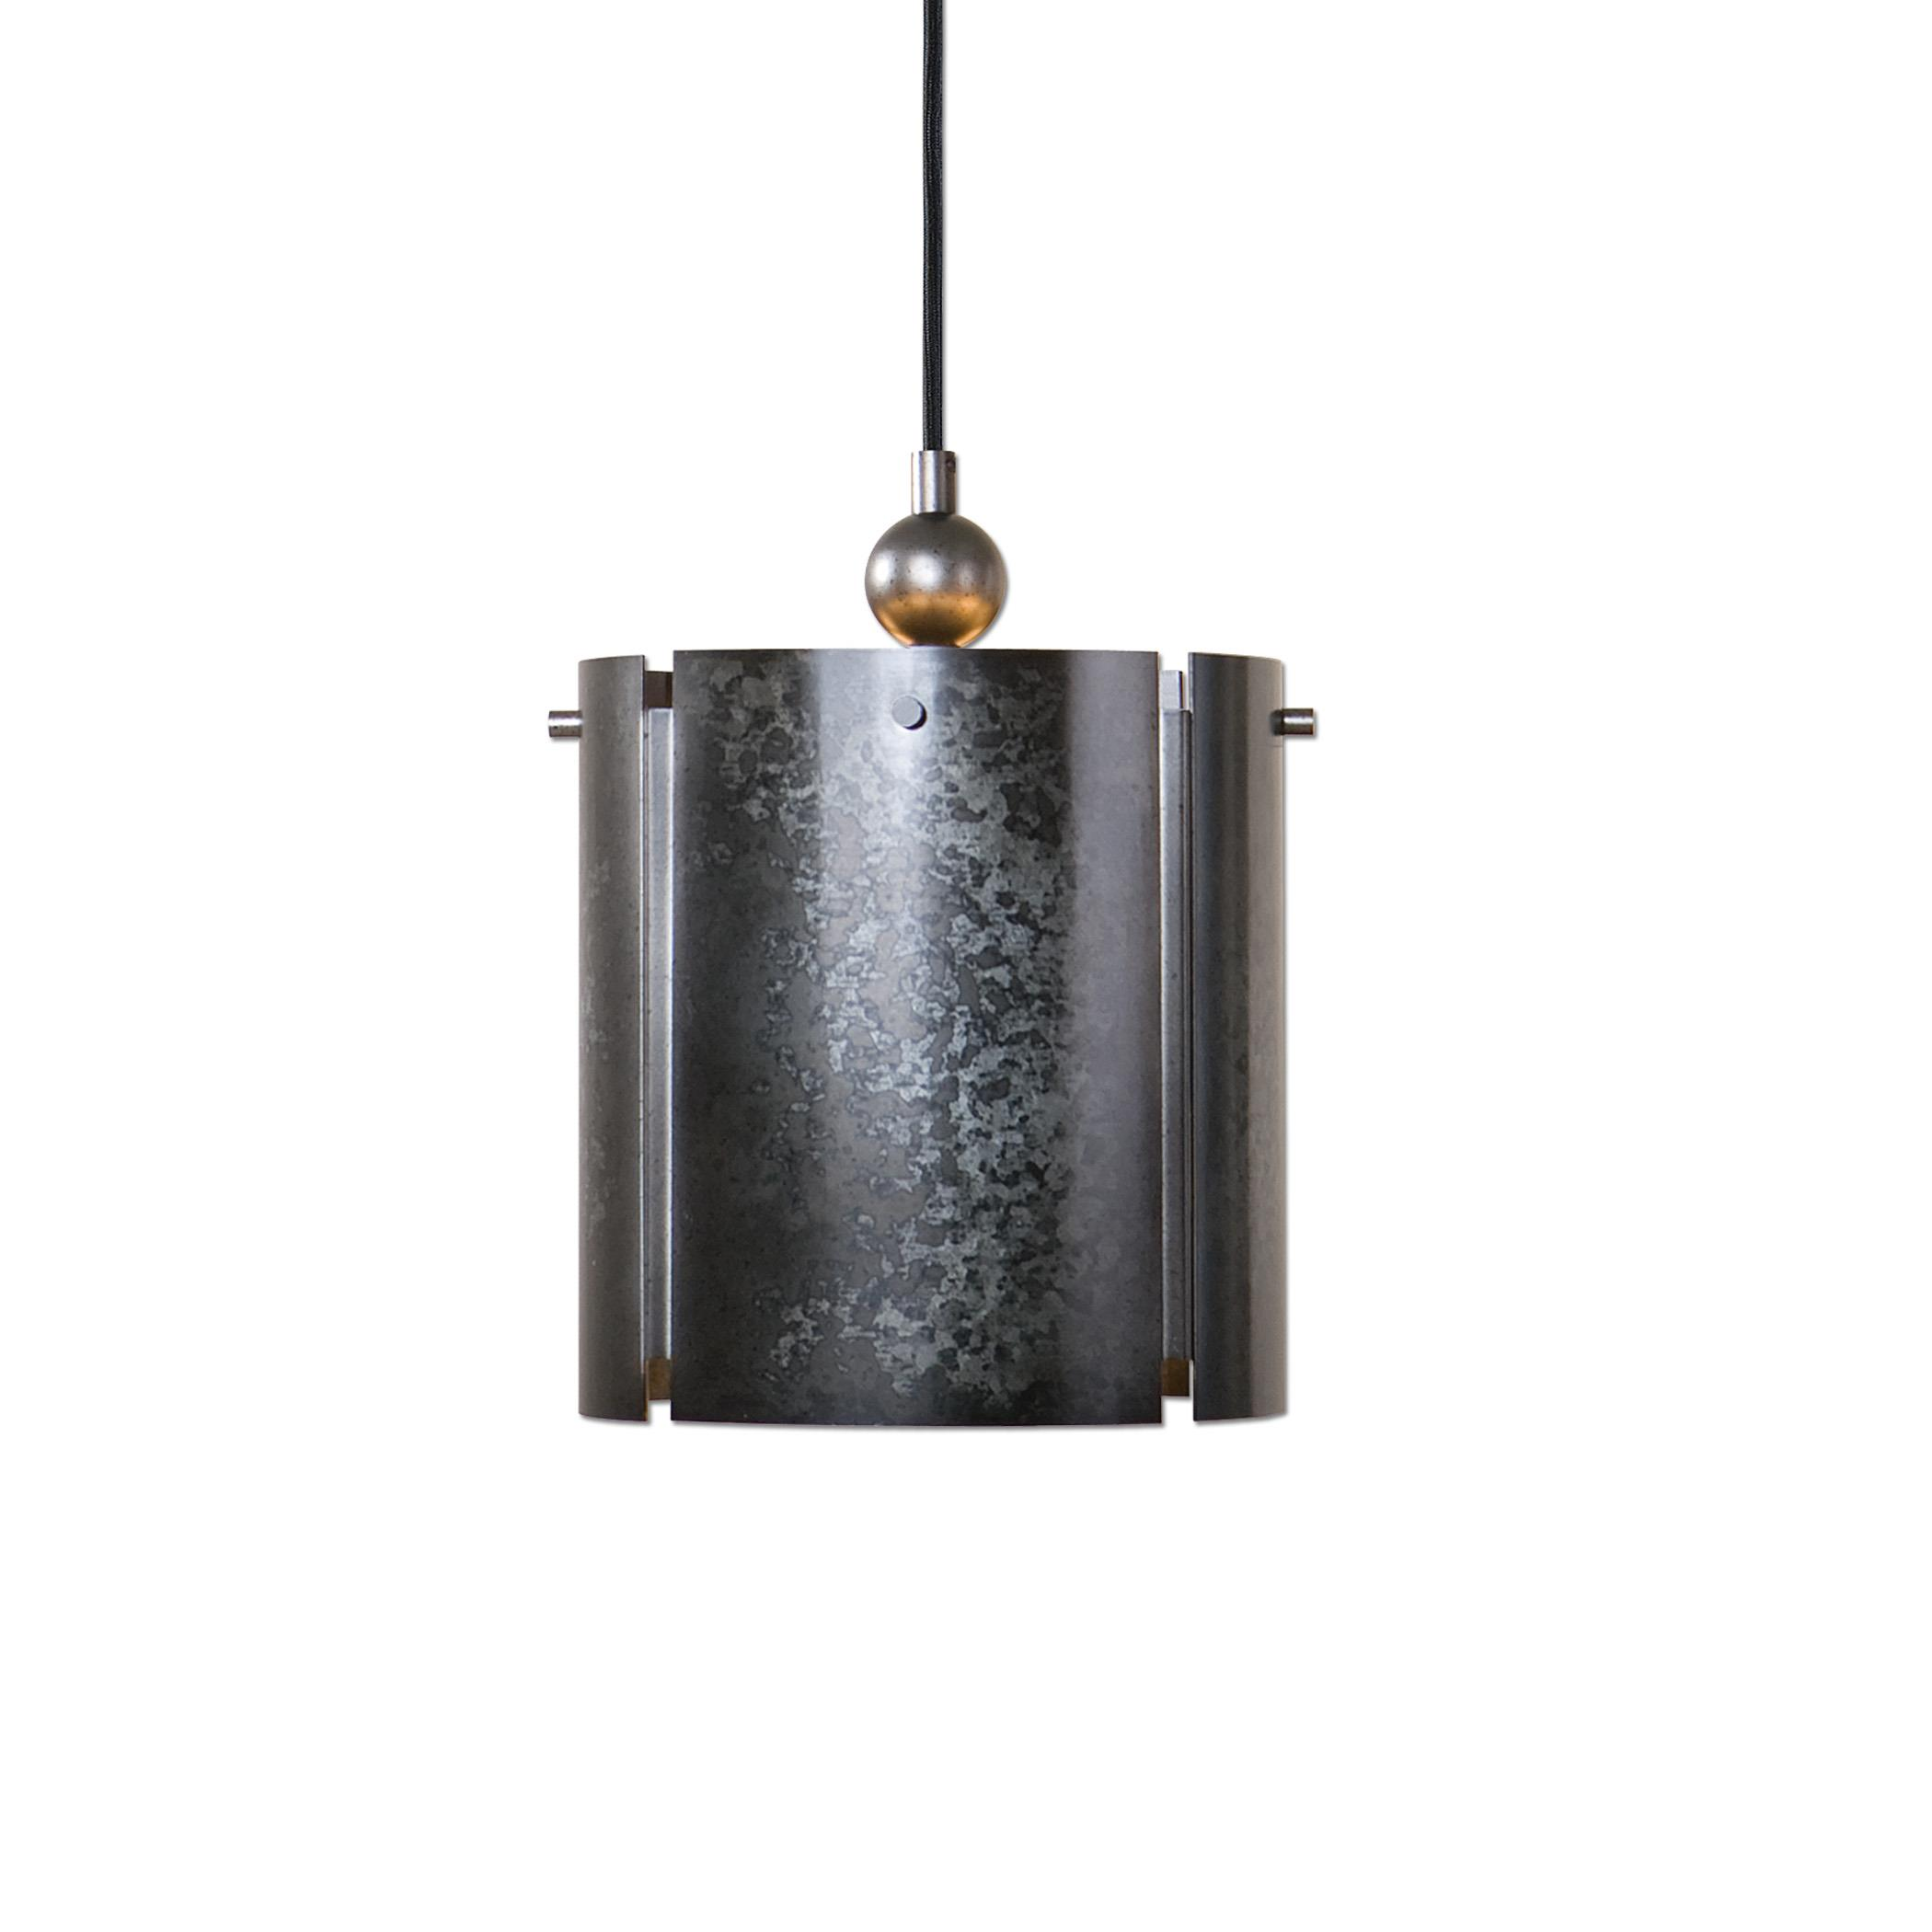 Uttermost Lighting Fixtures Norton 1 Light Mini Galvanized Metal Pendant - Item Number: 22069